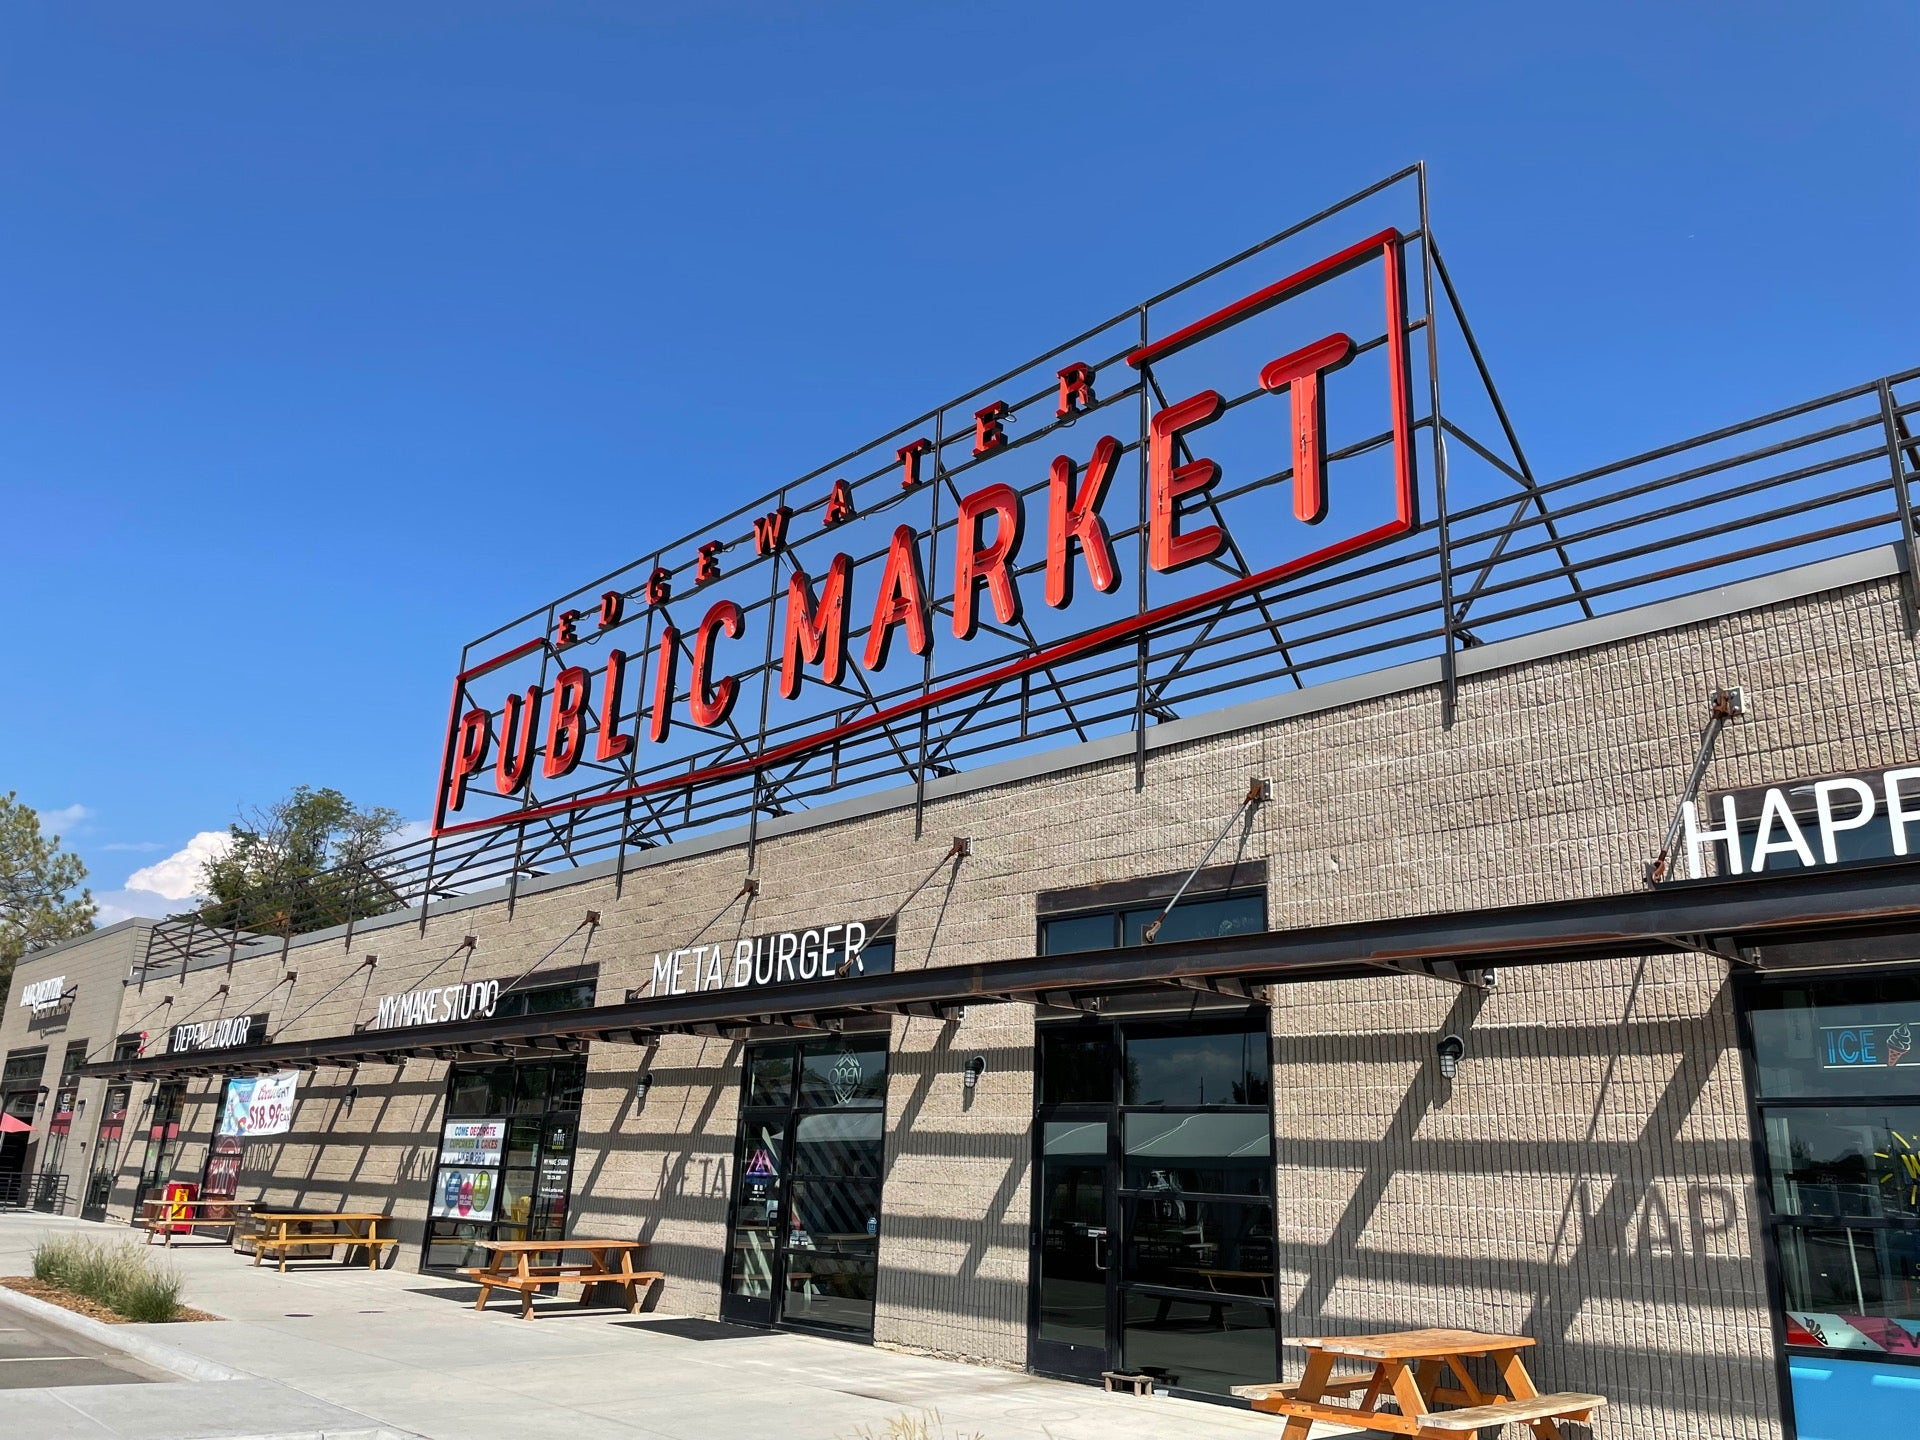 Checked in at Edgewater Public Market